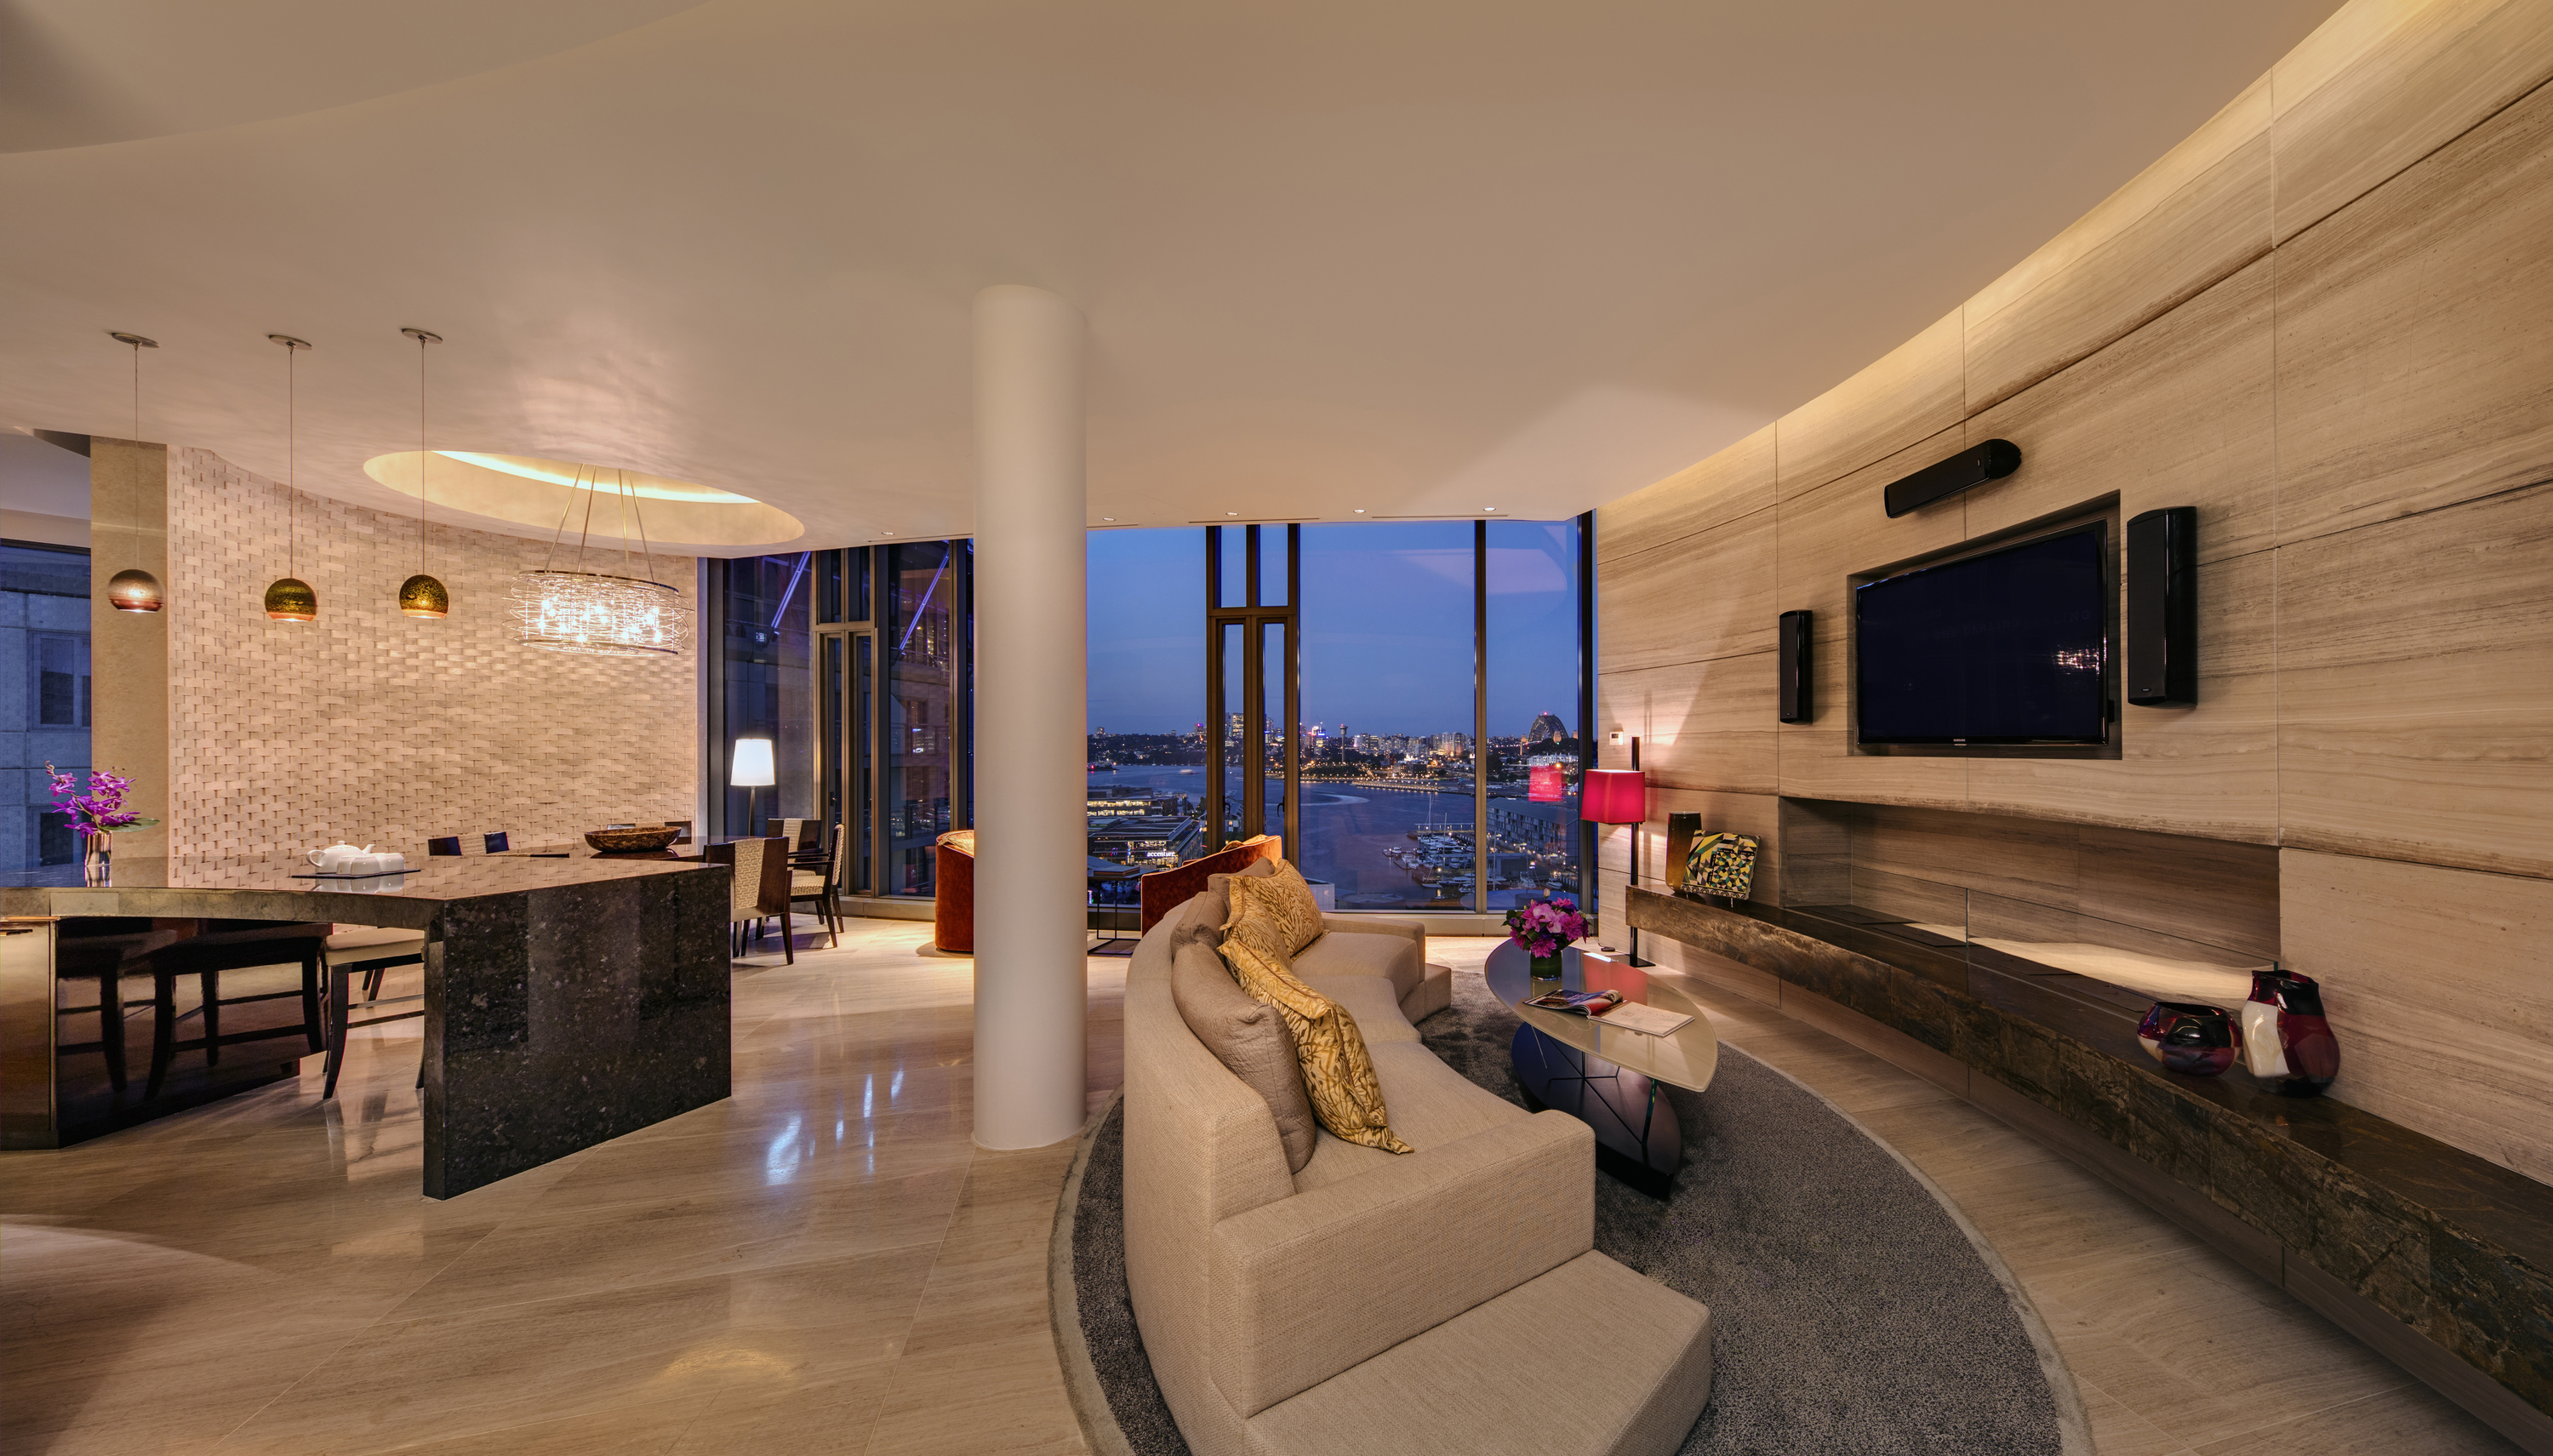 Escape the cold with a staycation at The Darling or Astral